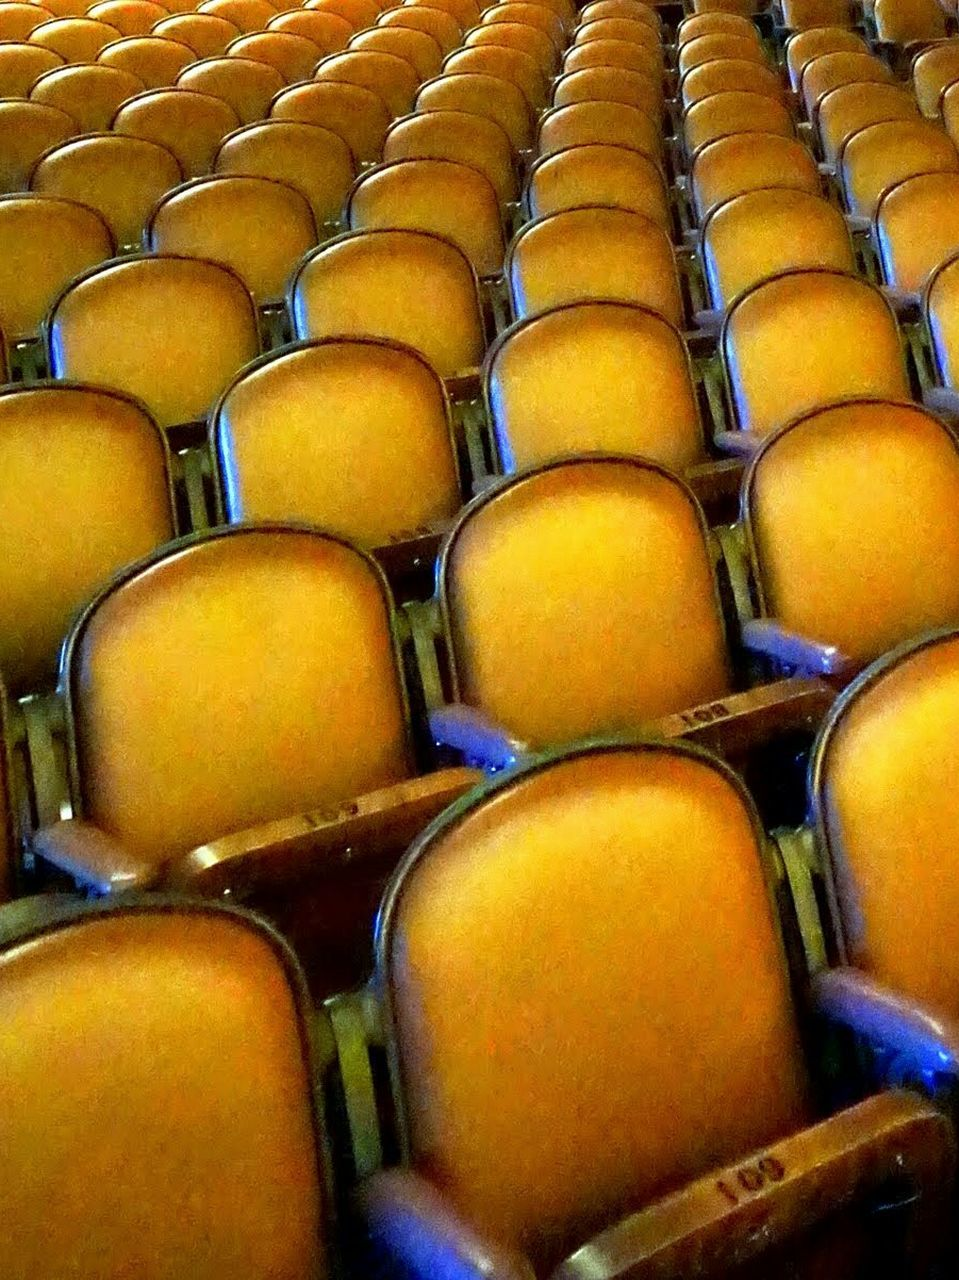 in a row, full frame, seat, abundance, indoors, large group of objects, auditorium, arrangement, backgrounds, no people, day